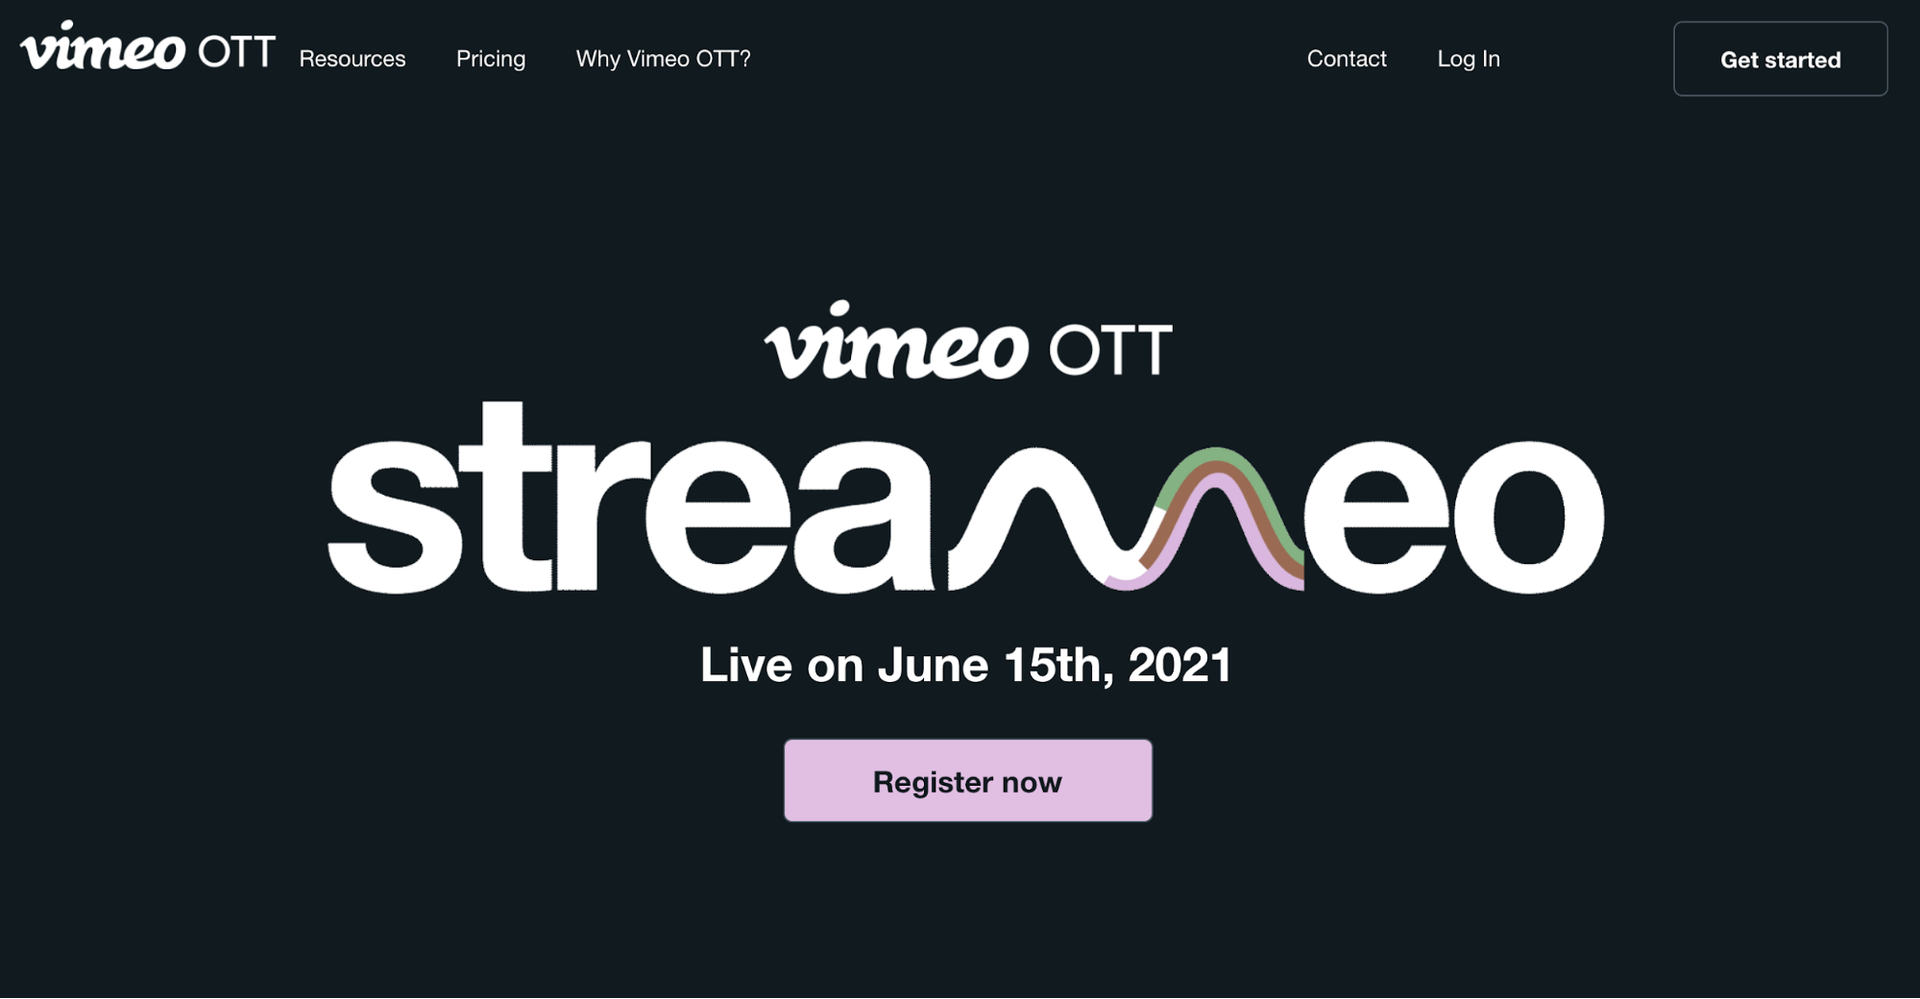 Example of video marketing with Vimeo's Streameo event